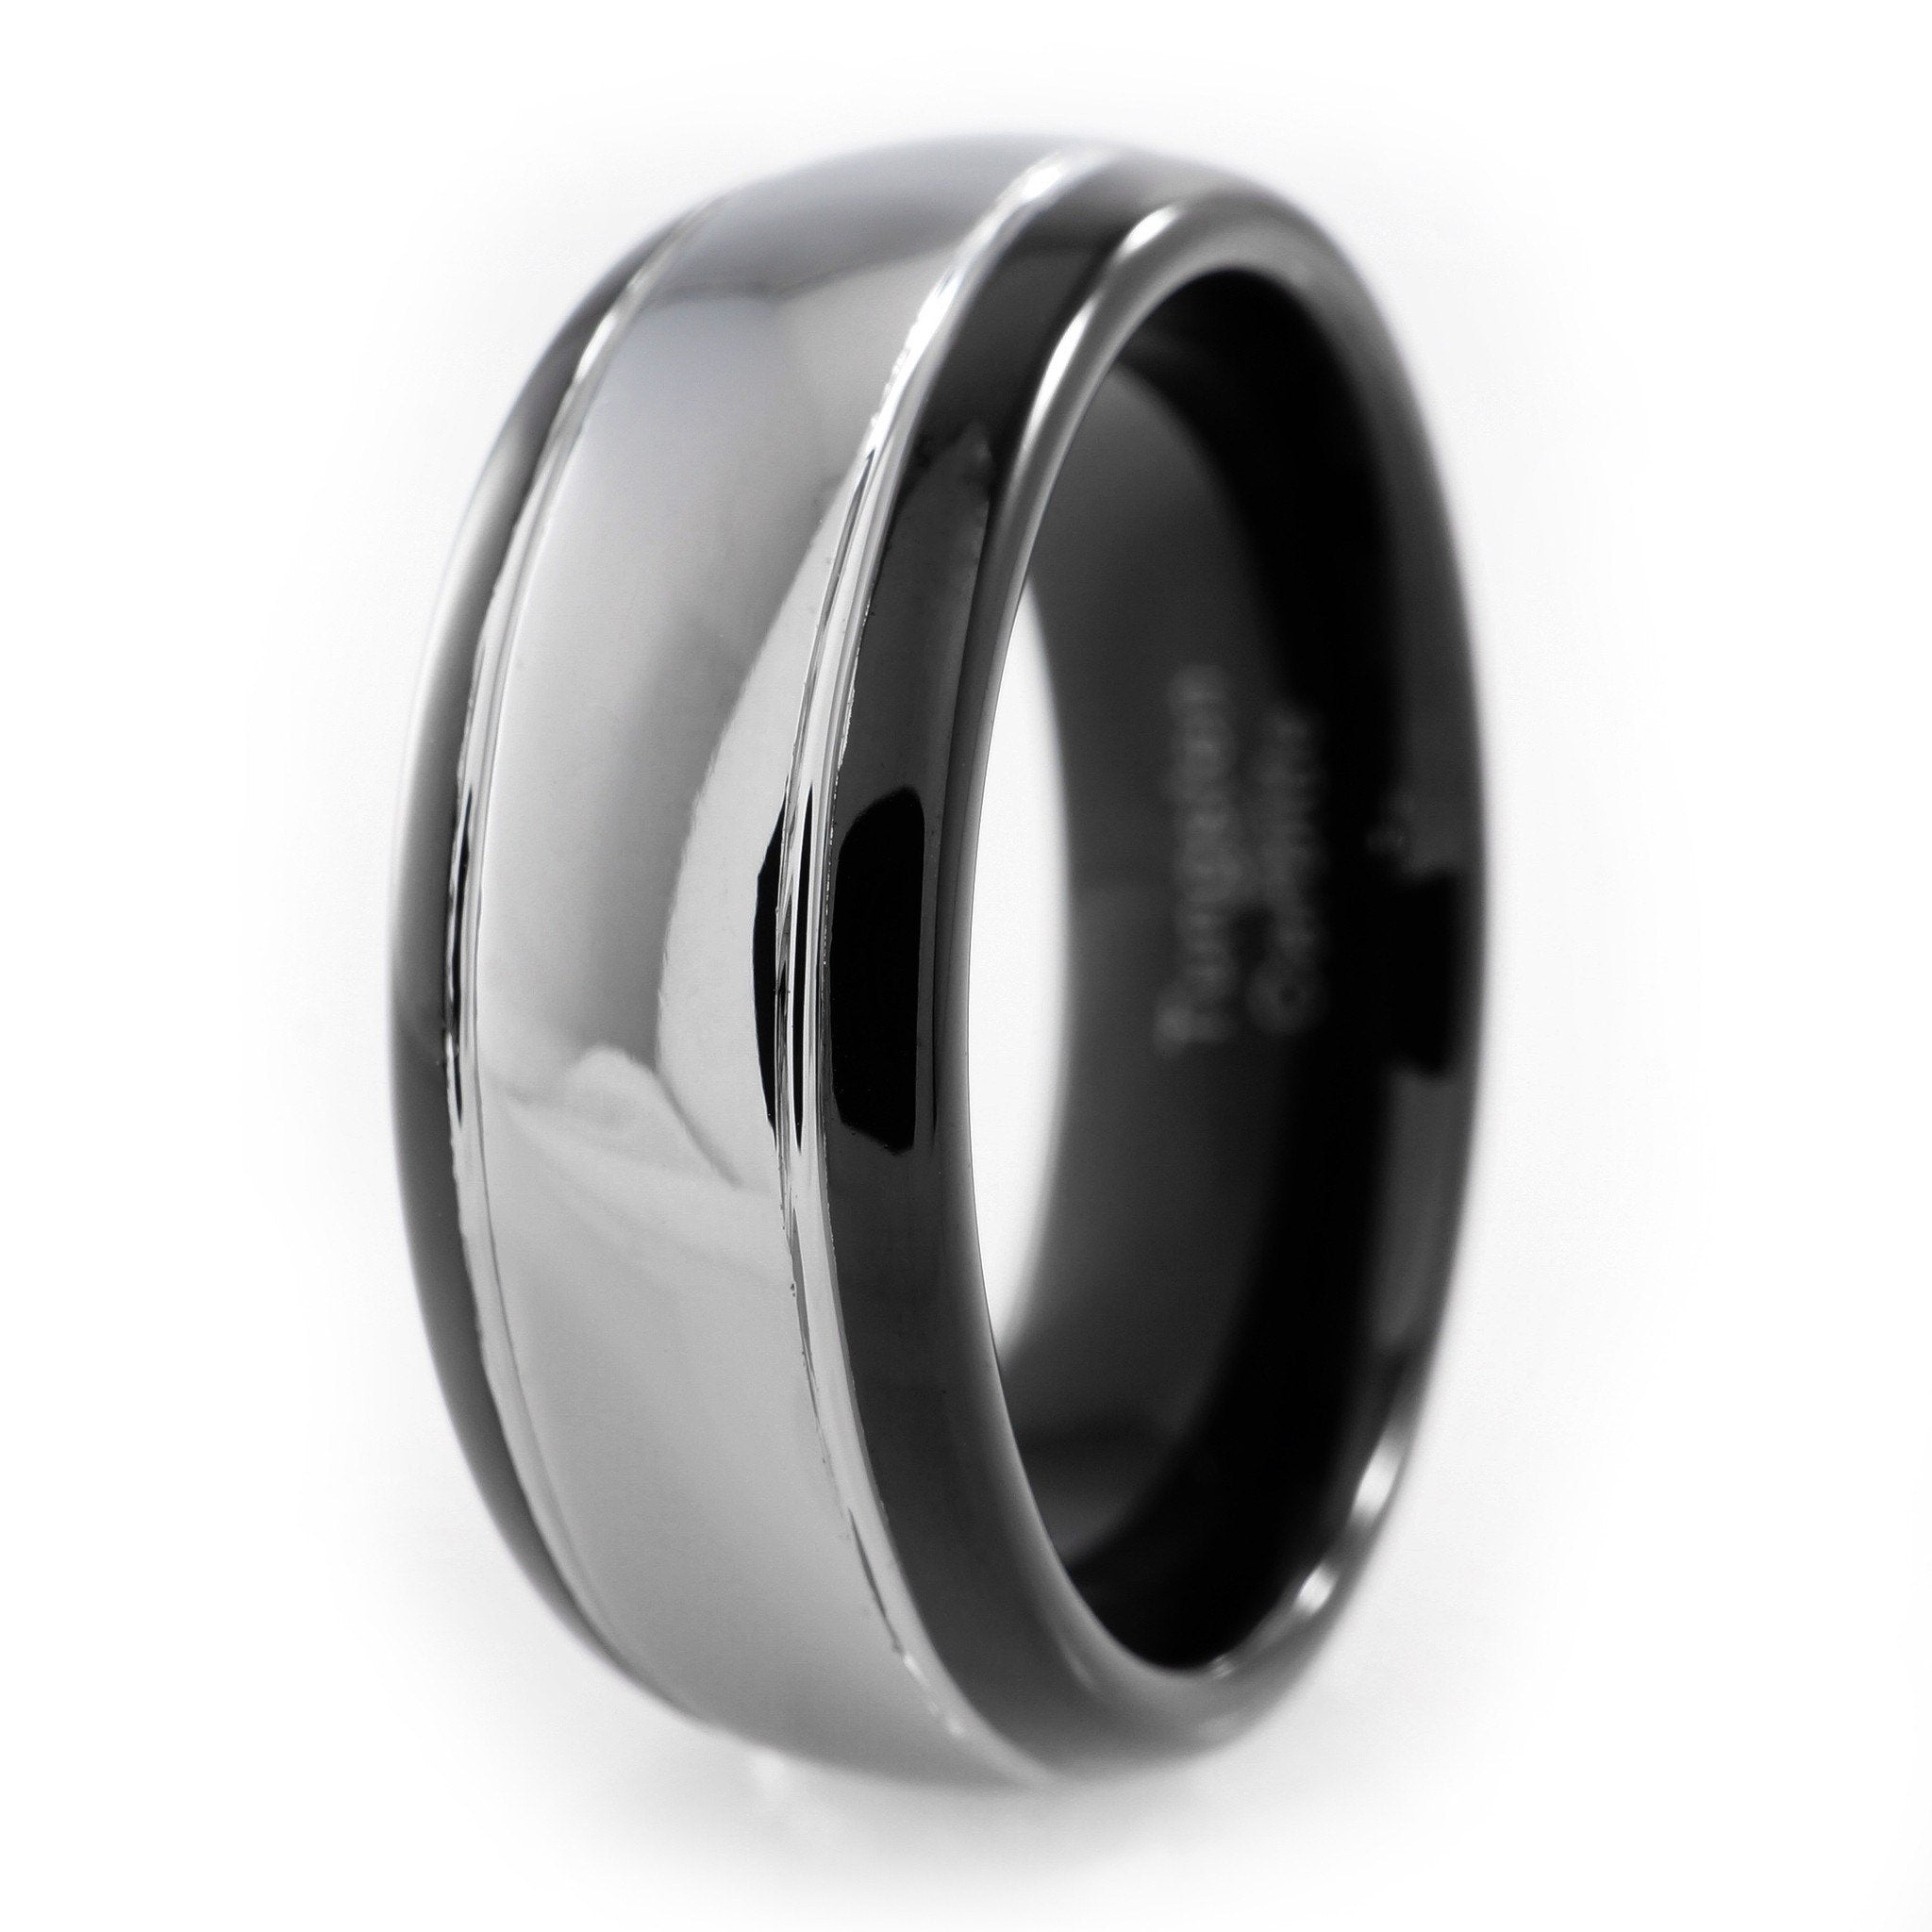 Affordable Black Silver Dome Tungsten Carbide Ring 8MM - White Background